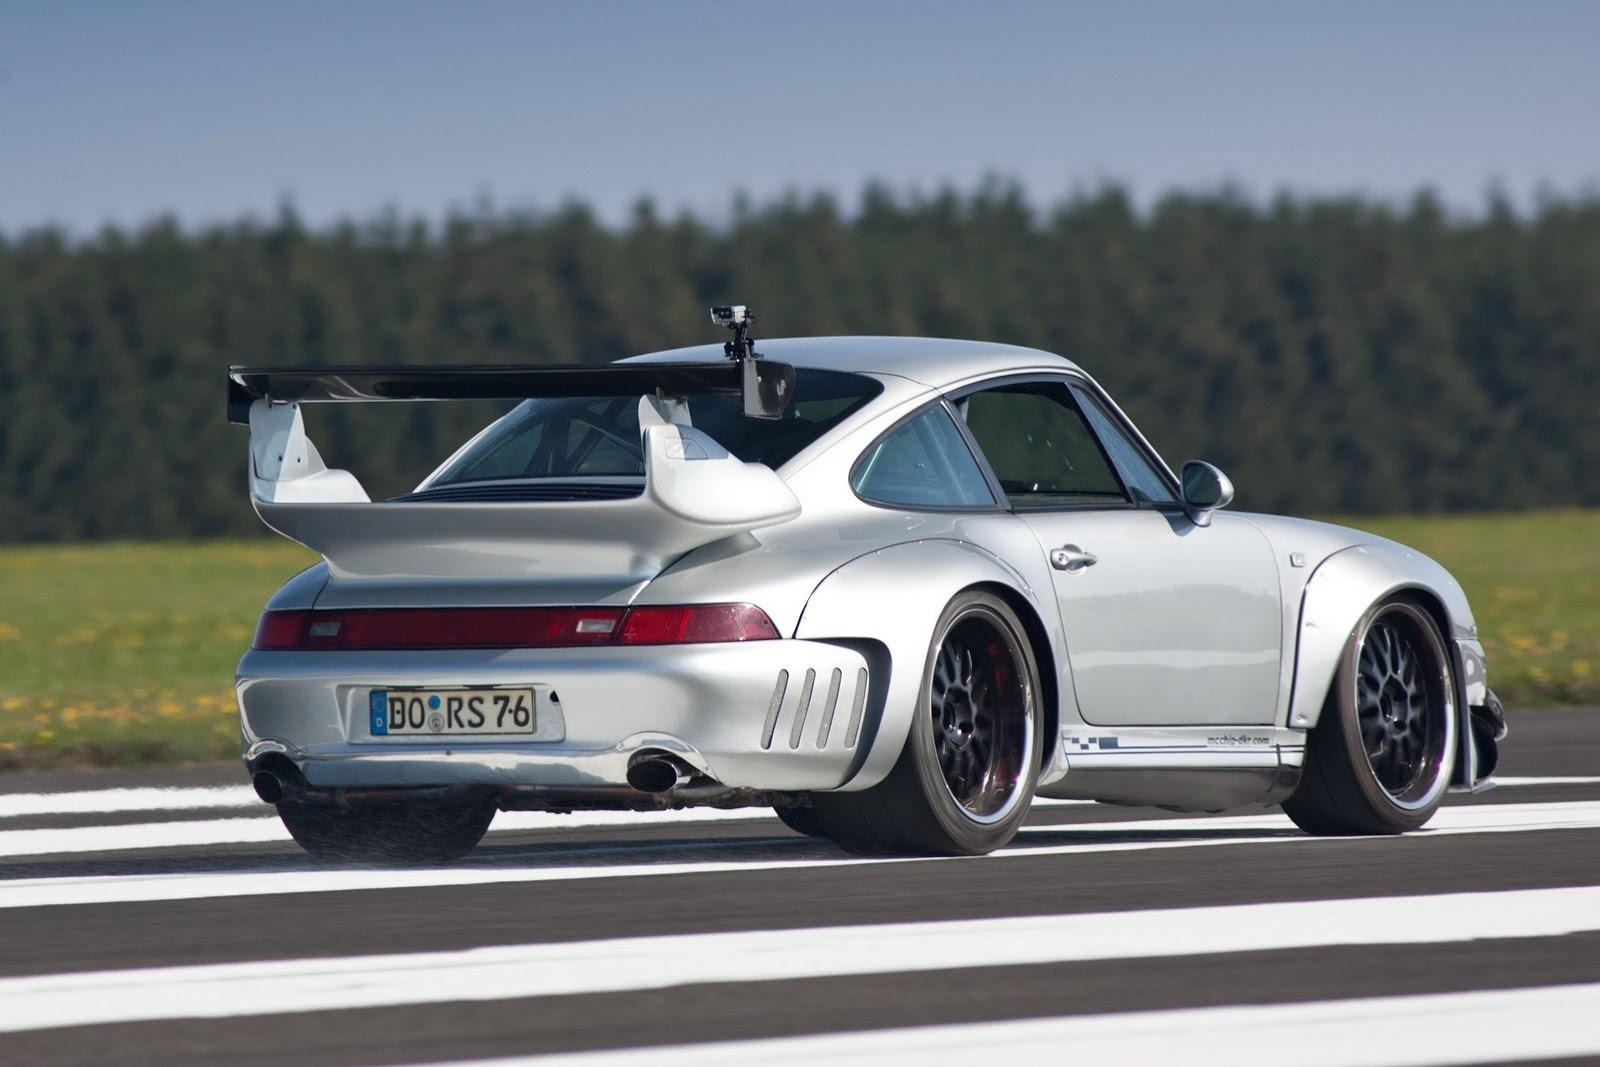 Famous Tuned Cars Porsche 993 Gt2 Turbo 3 6 Widebody